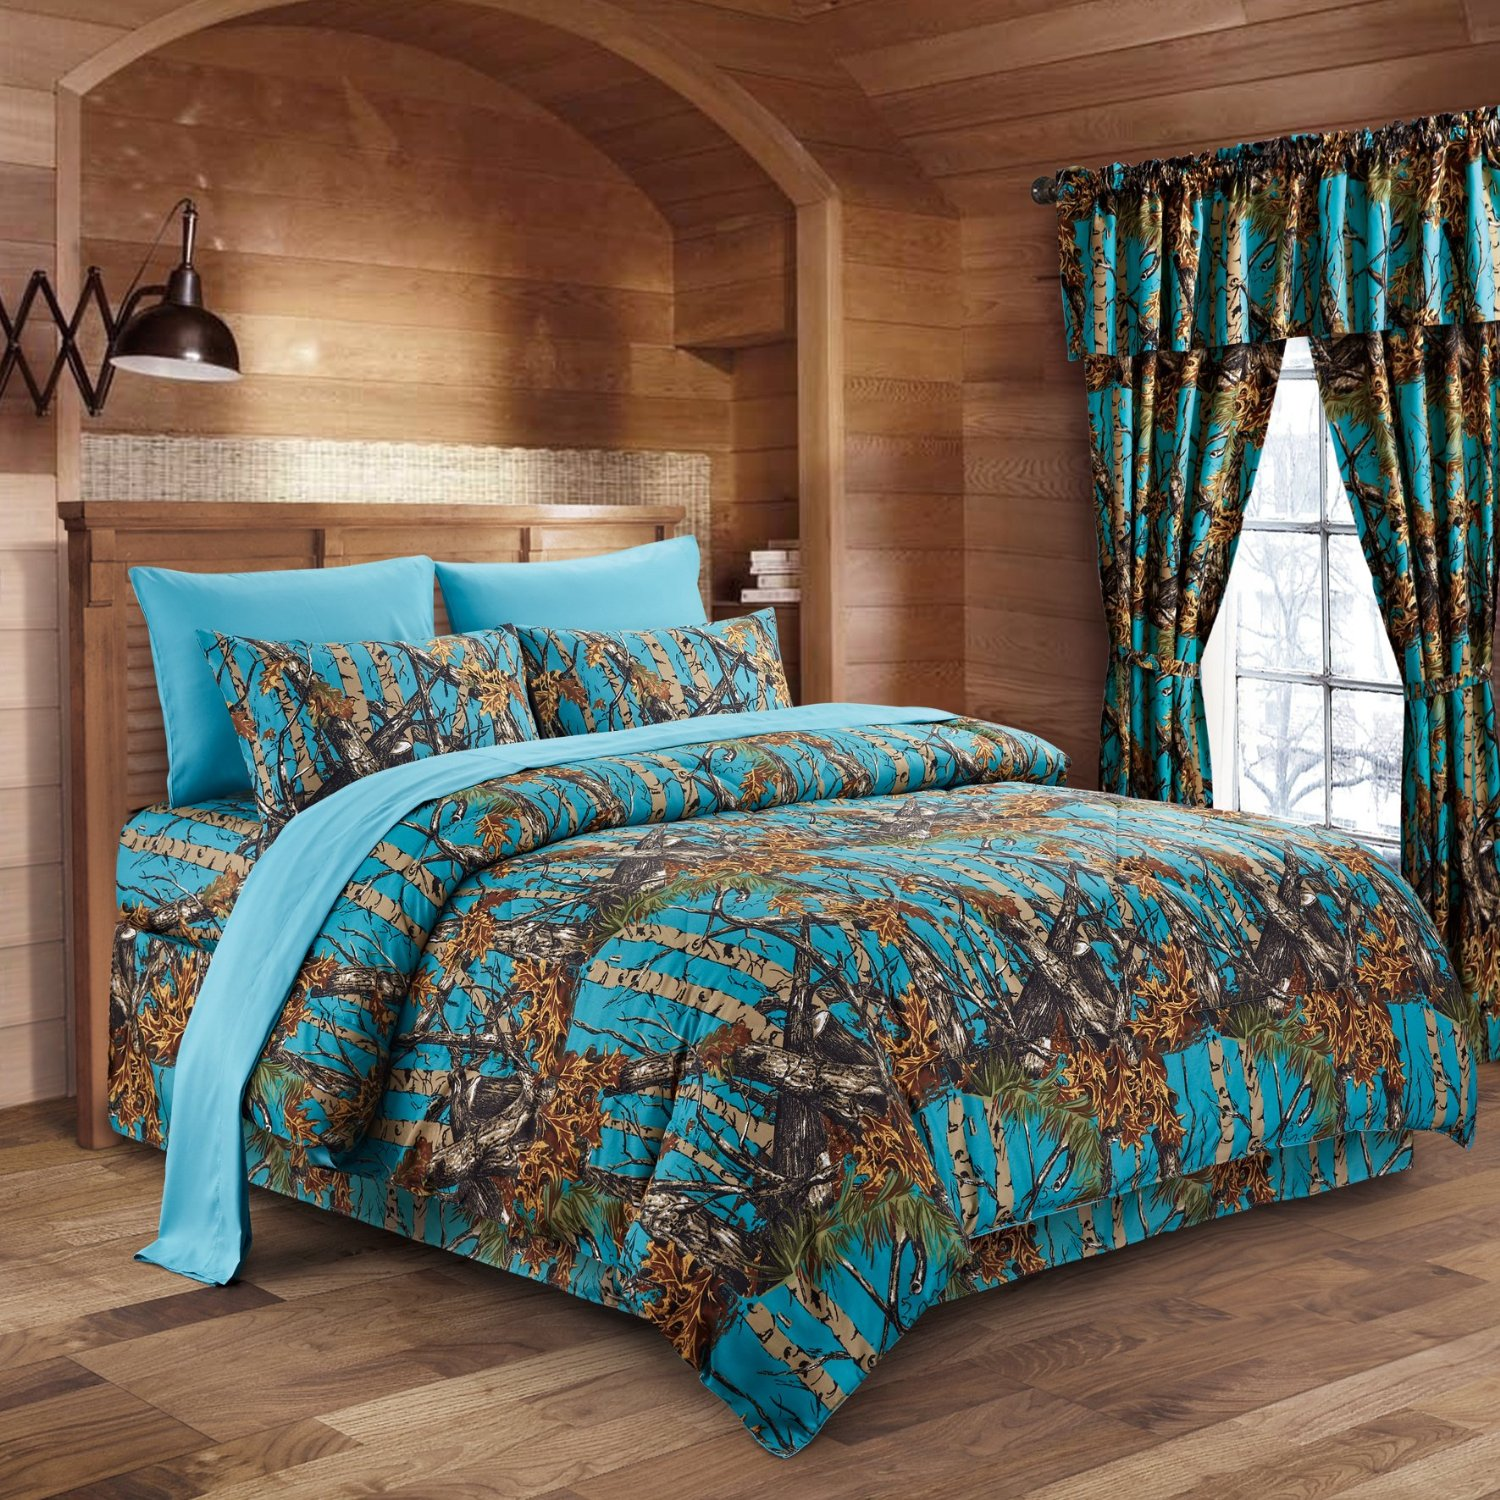 Regal Comfort 8pc Queen Size Woods Sea Breeze Camouflage Premium Comforter, Sheet, Pillowcases,and Bed Skirt Set Camo Bedding Set For Hunters Cabin or Rustic Lodge Teens Boys and Girls